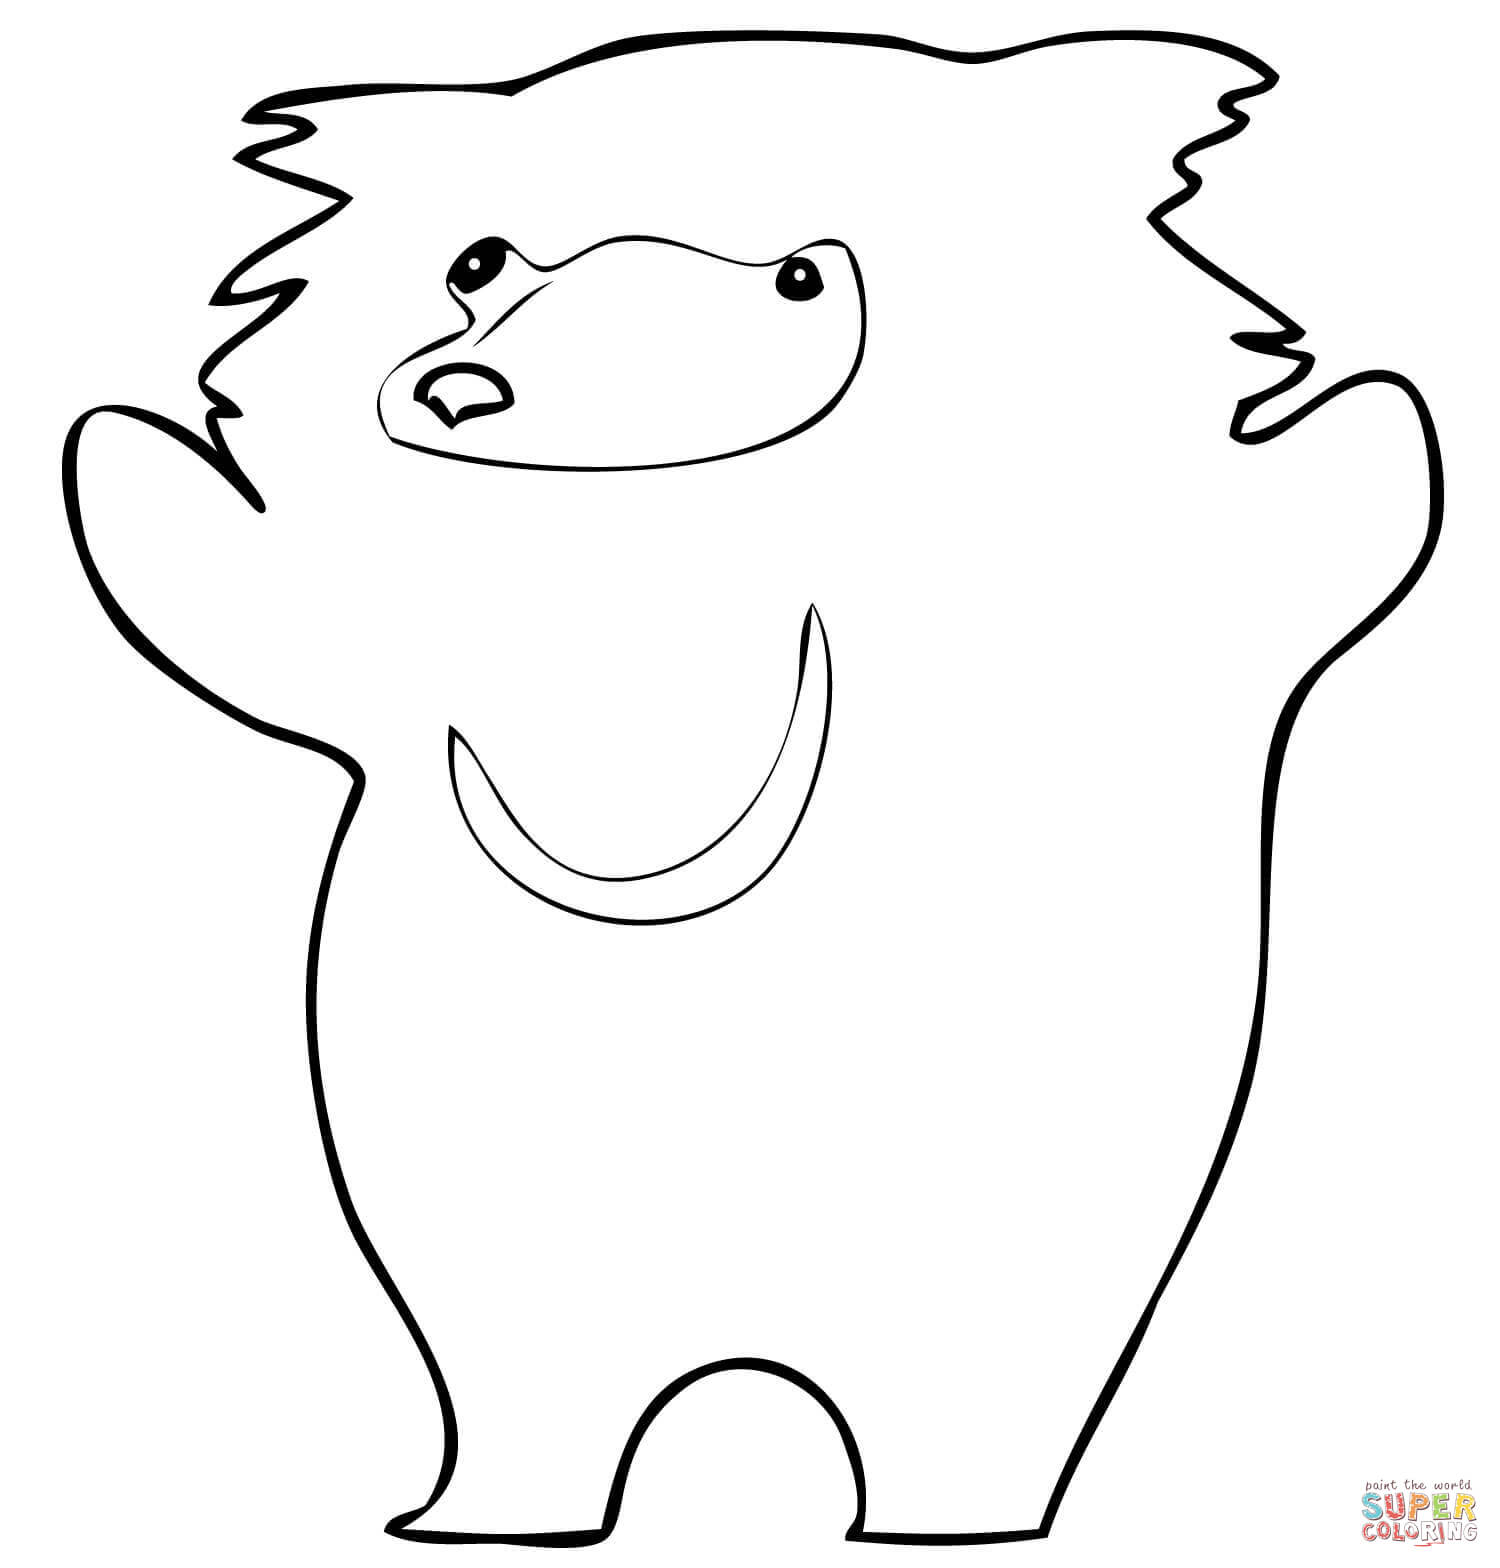 1500x1568 Cute Sloth Bear Coloring Page Free Printable Pages